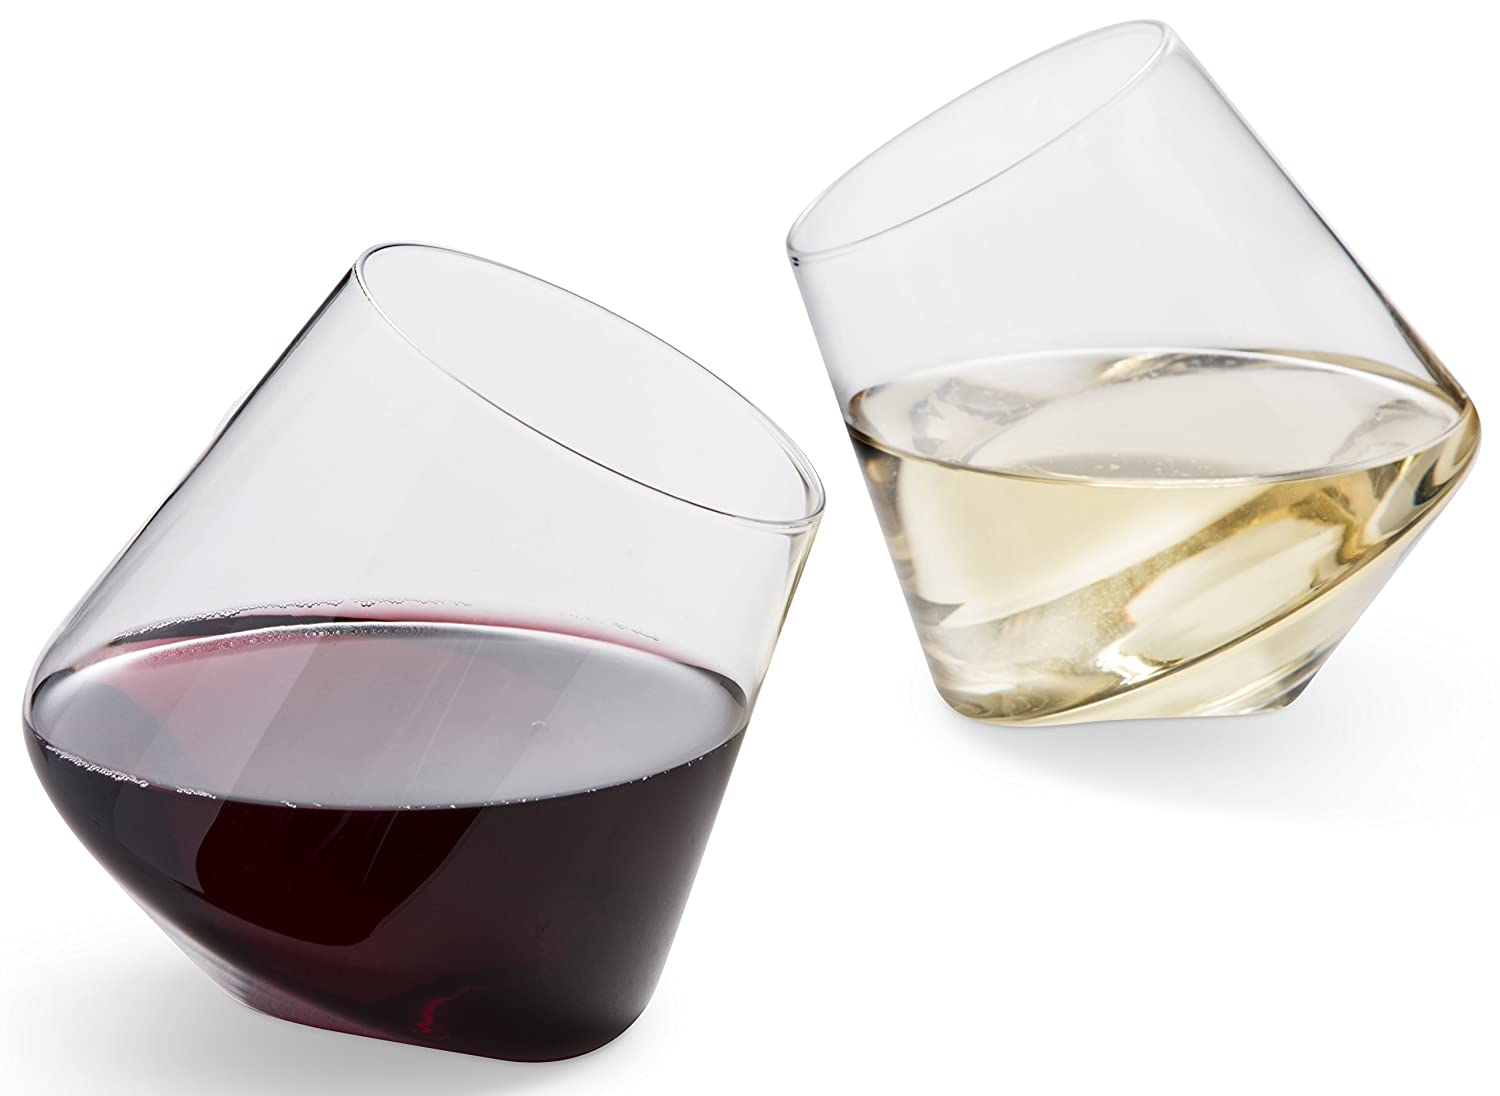 Hand Blown Stemless Wine Glasses, Set of 2 – Naturally Aerating, Elegant Wine Glassware for Cabernet, Pinot Noir, Merlot, and Blends – CulinexCo.com Spinning Wine Tumblers for Him and Her, 12 Oz.